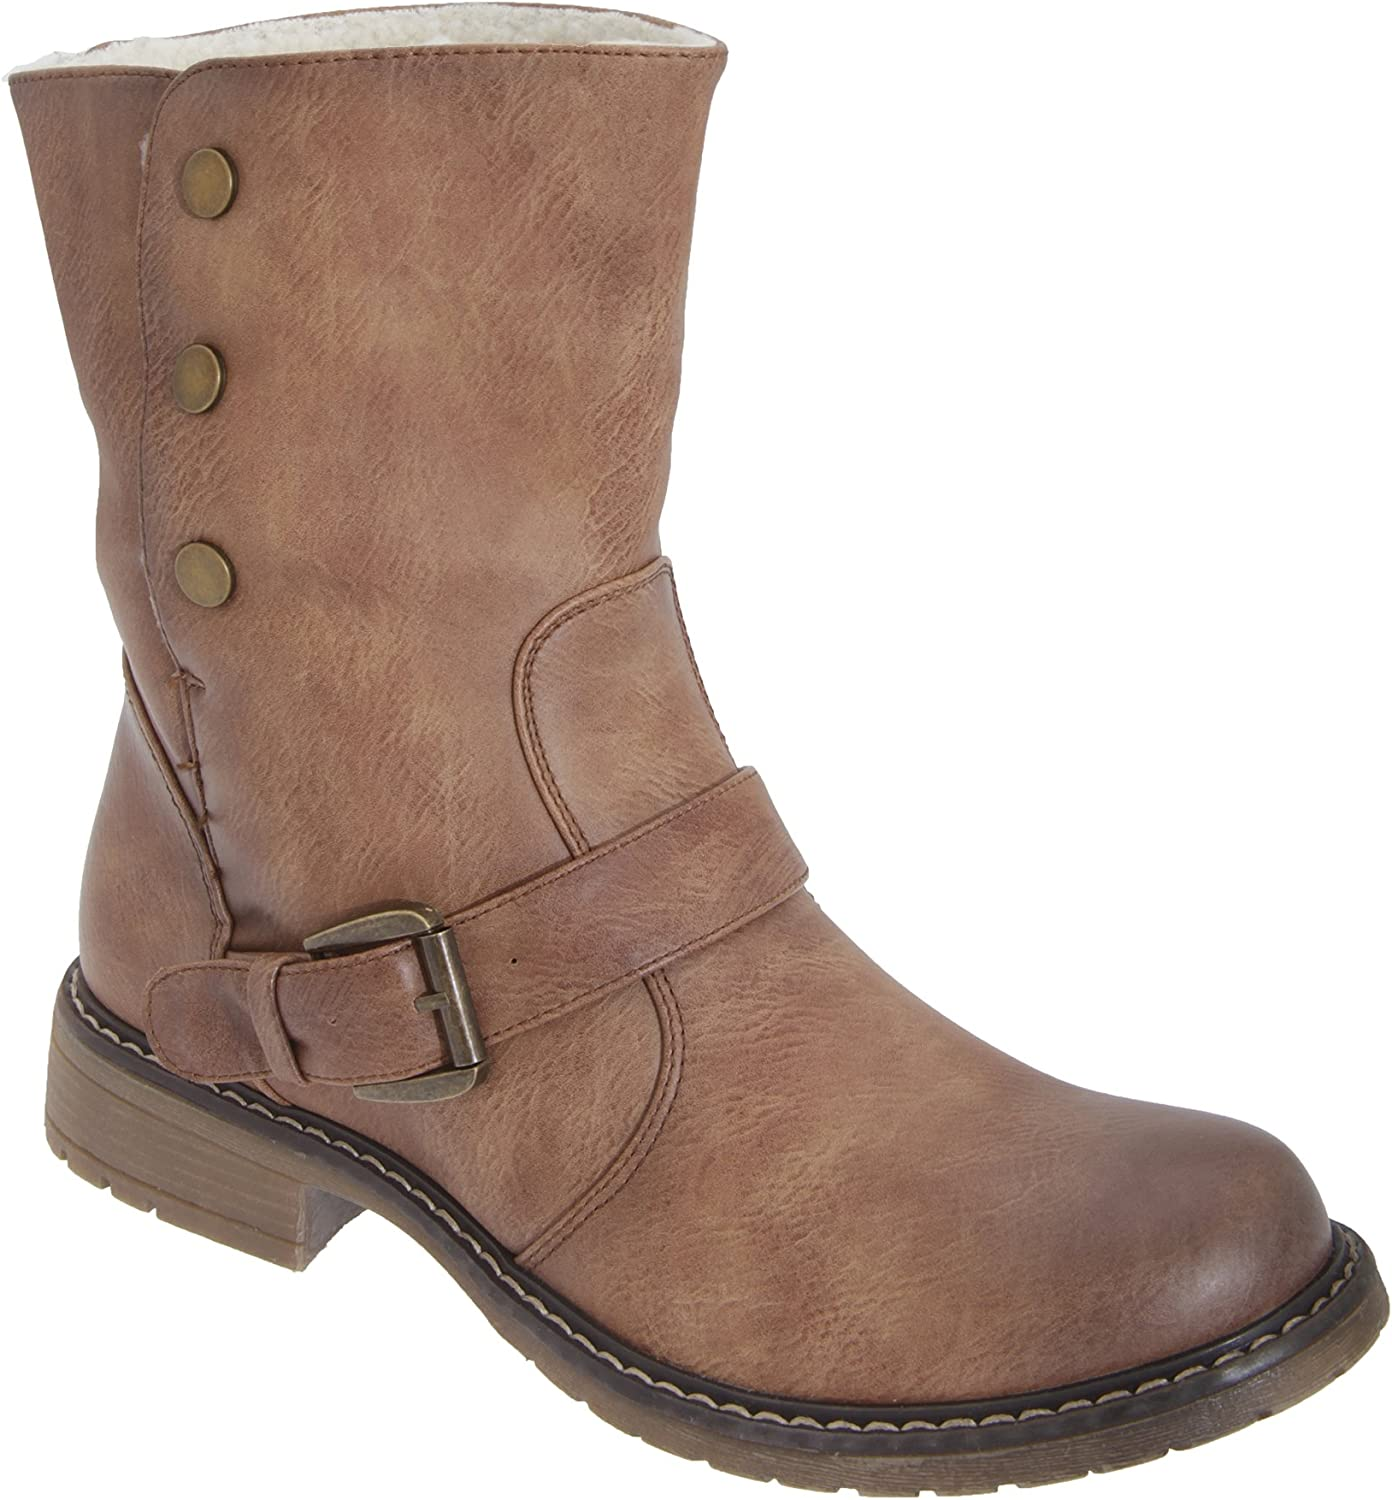 Cats Eyes Womens Ladies Fold Down Biker Style Ankle Boots